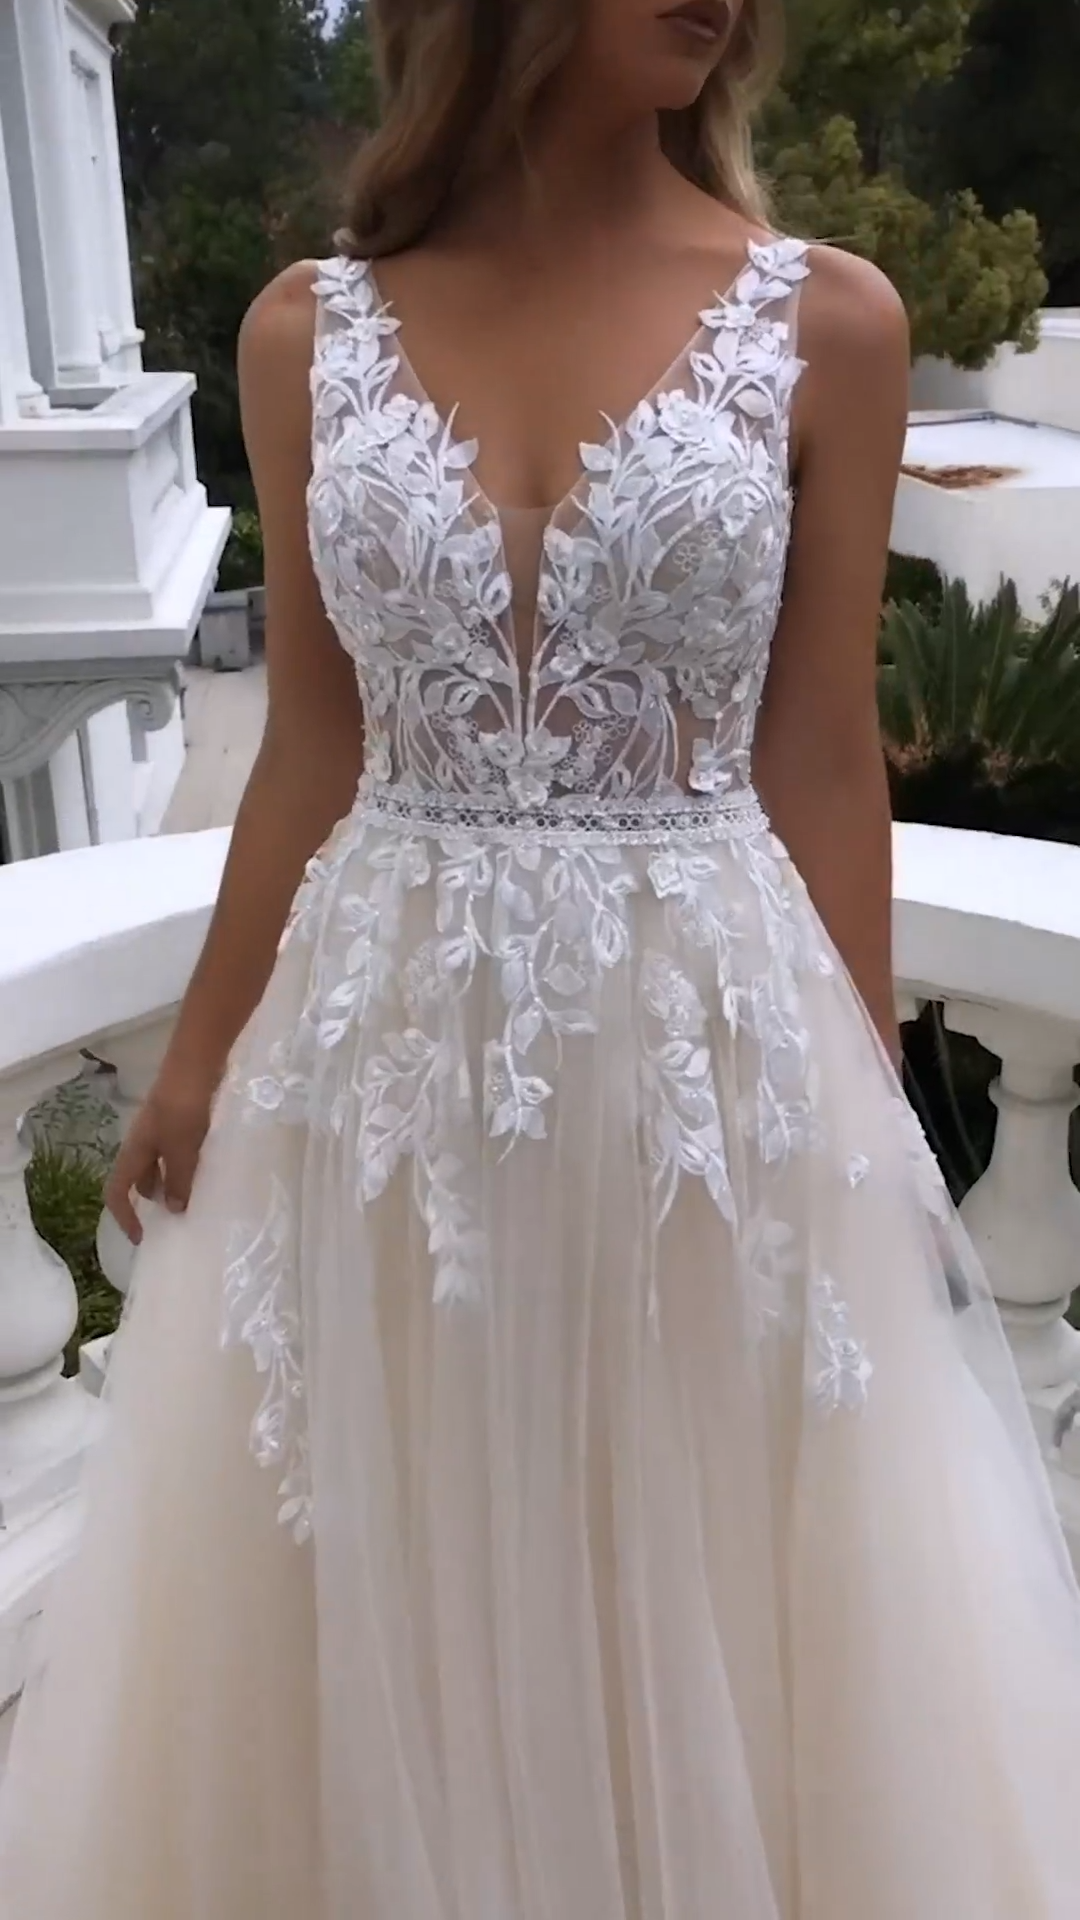 11+ Pictures of wedding dresses ideas information